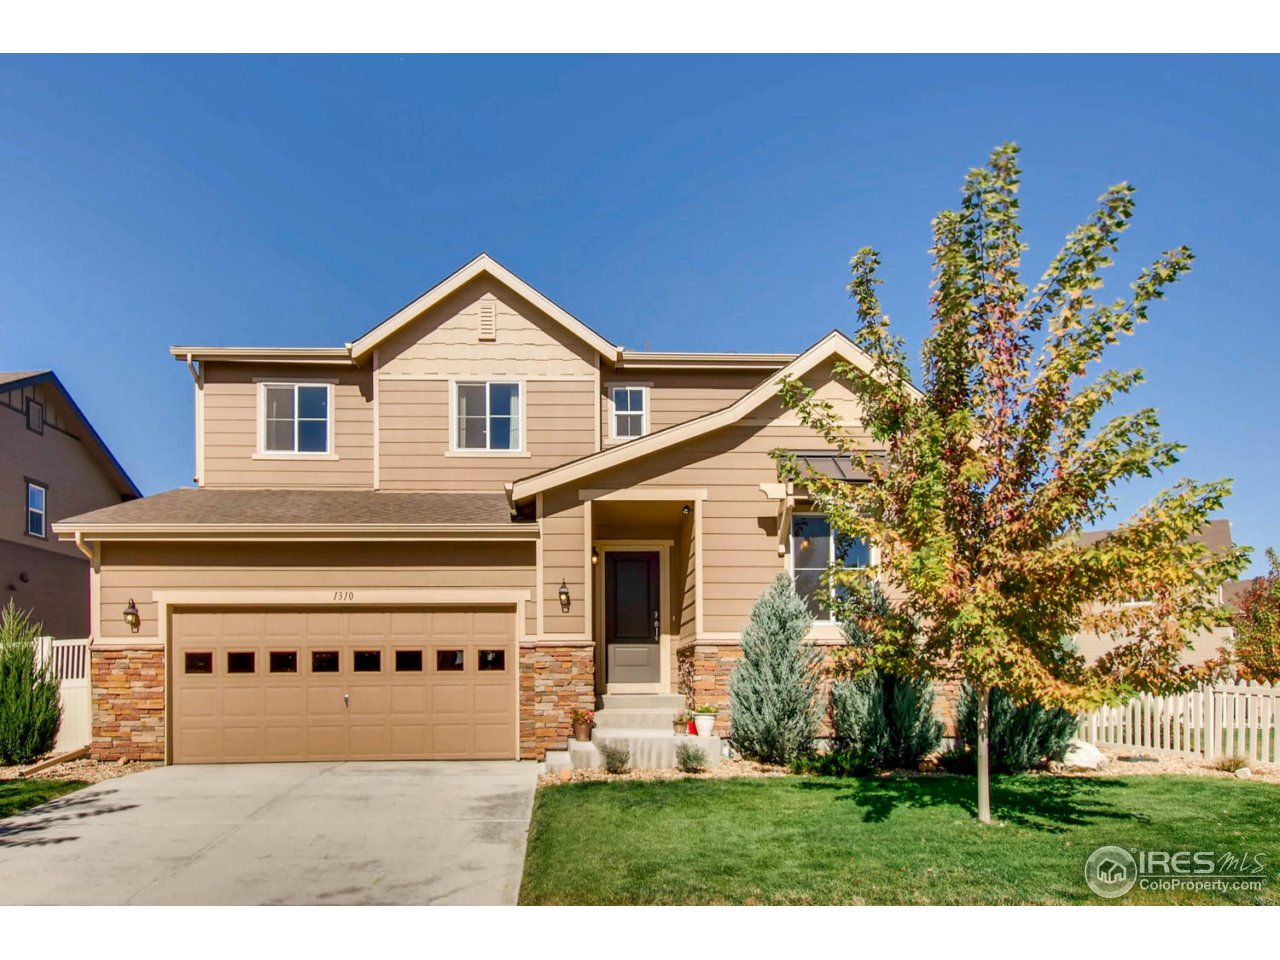 1310 Armstrong Dr, Longmont, CO 80504